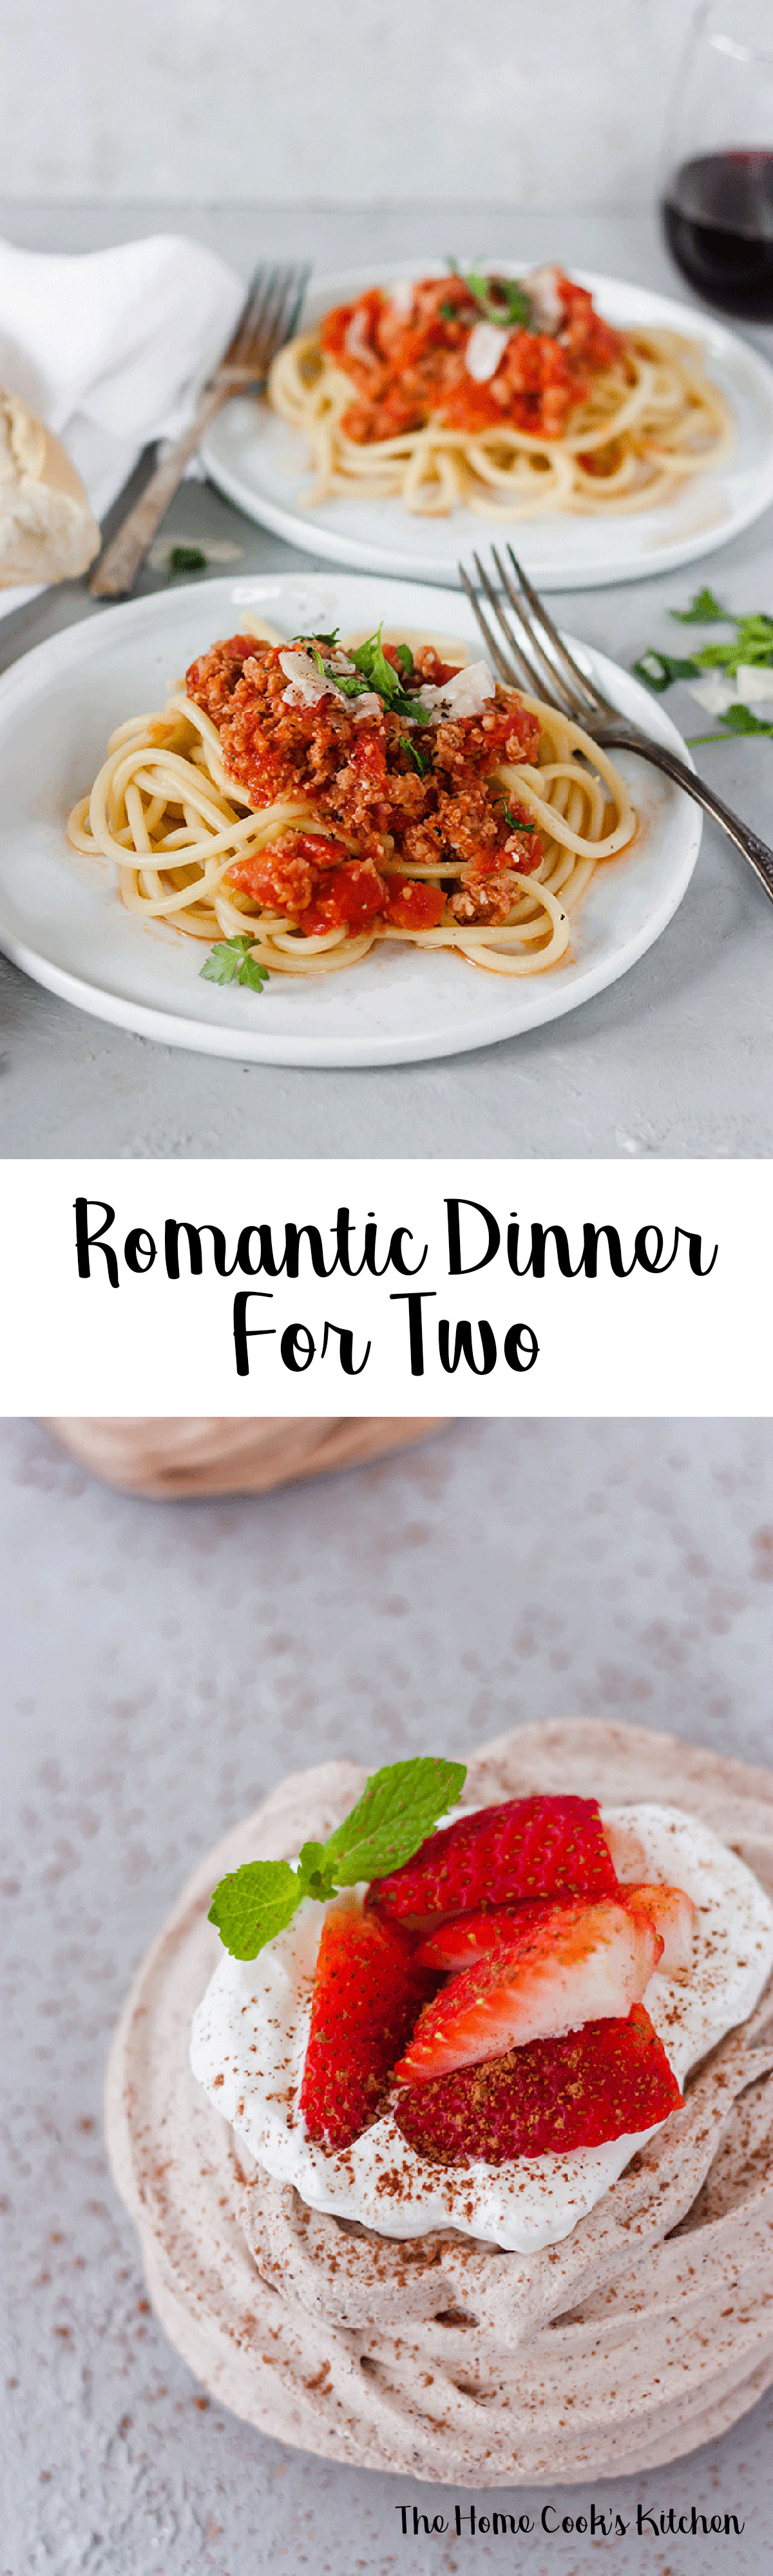 Whether it's a Valentine's Day celebration, or if you're looking to just spoil your S.O, this romantic dinner for two is for you! A beautiful bucatini all'Amatriciana and chocolate meringue nests it's all you need for a great celebration! #romanticdinner #dinnerfortwo #dinnerfortwoathome